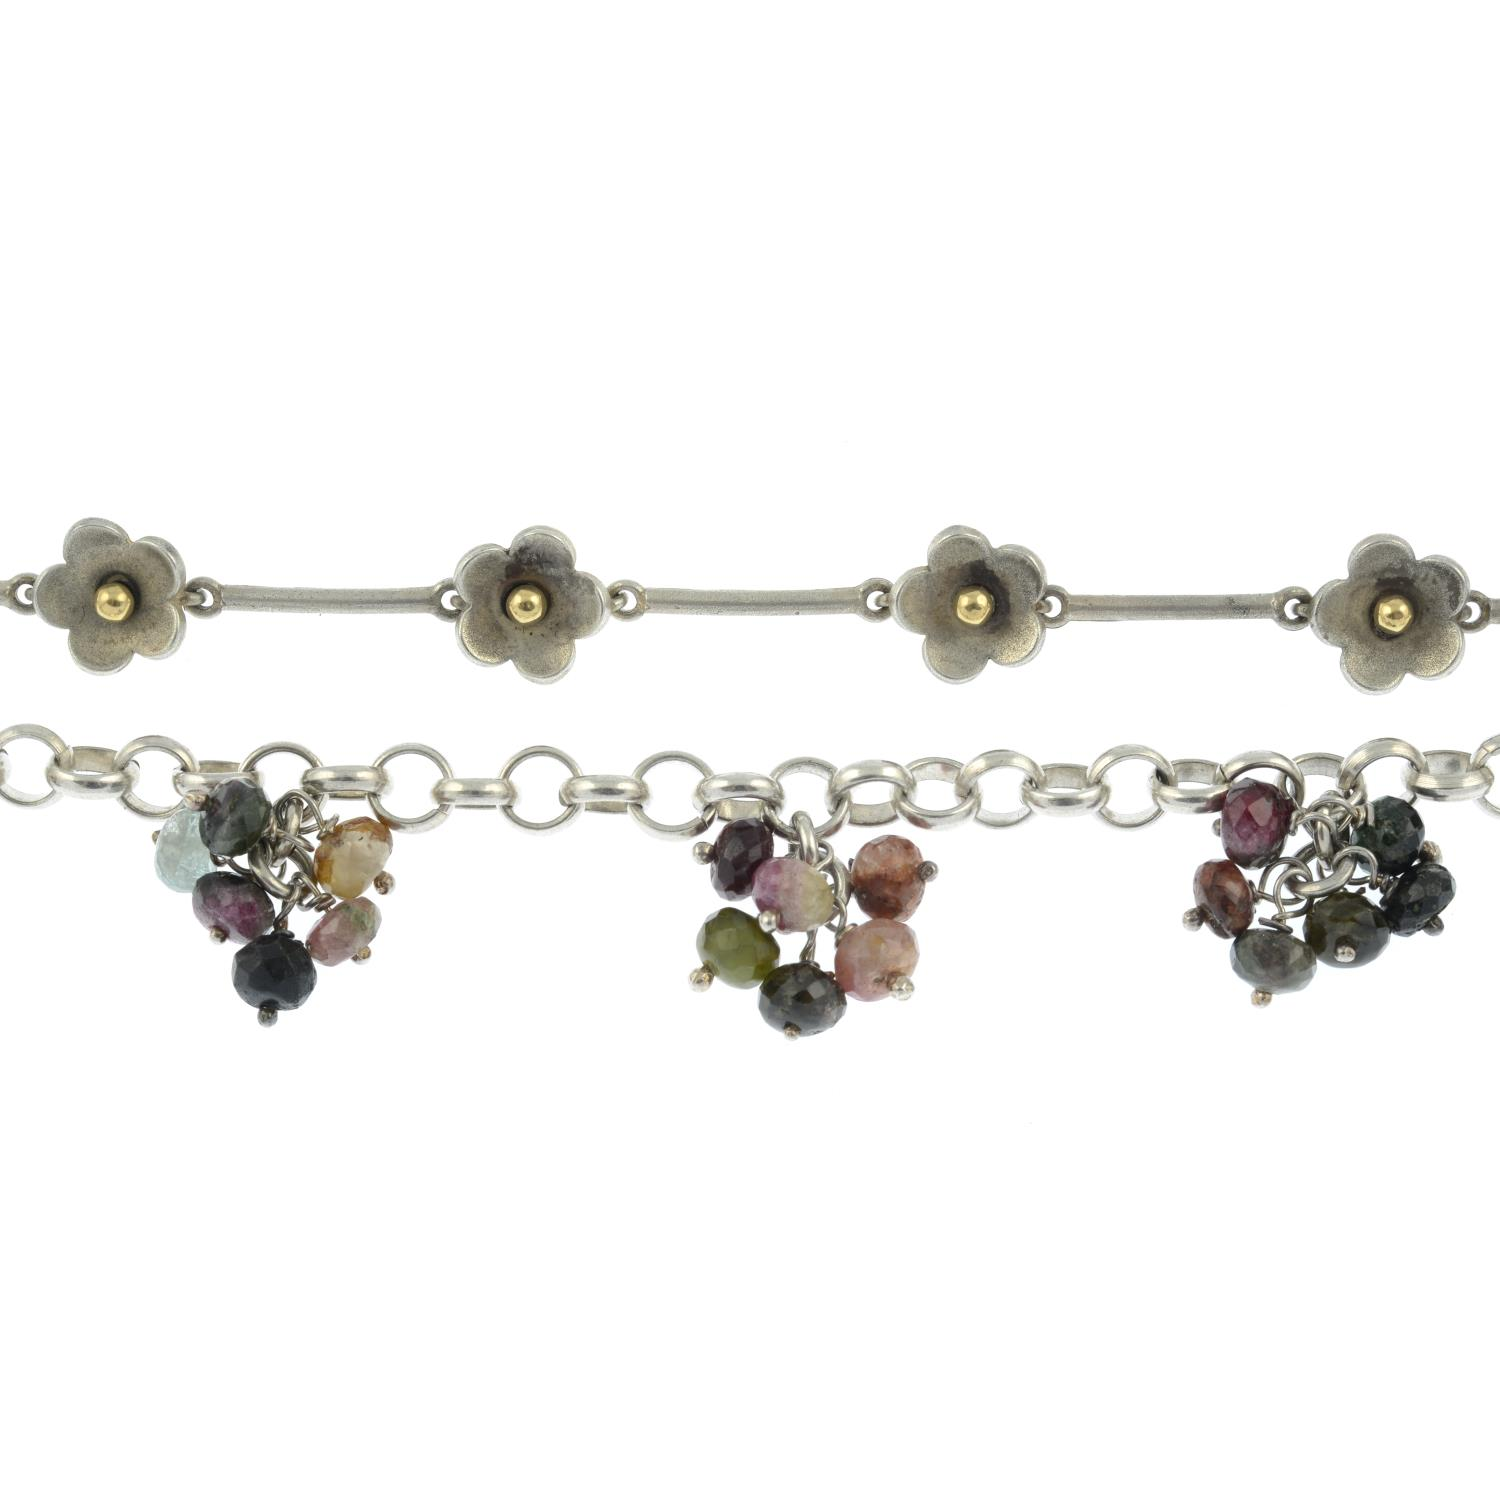 A selection of jewellery, to include a daisy chain motif bracelet.